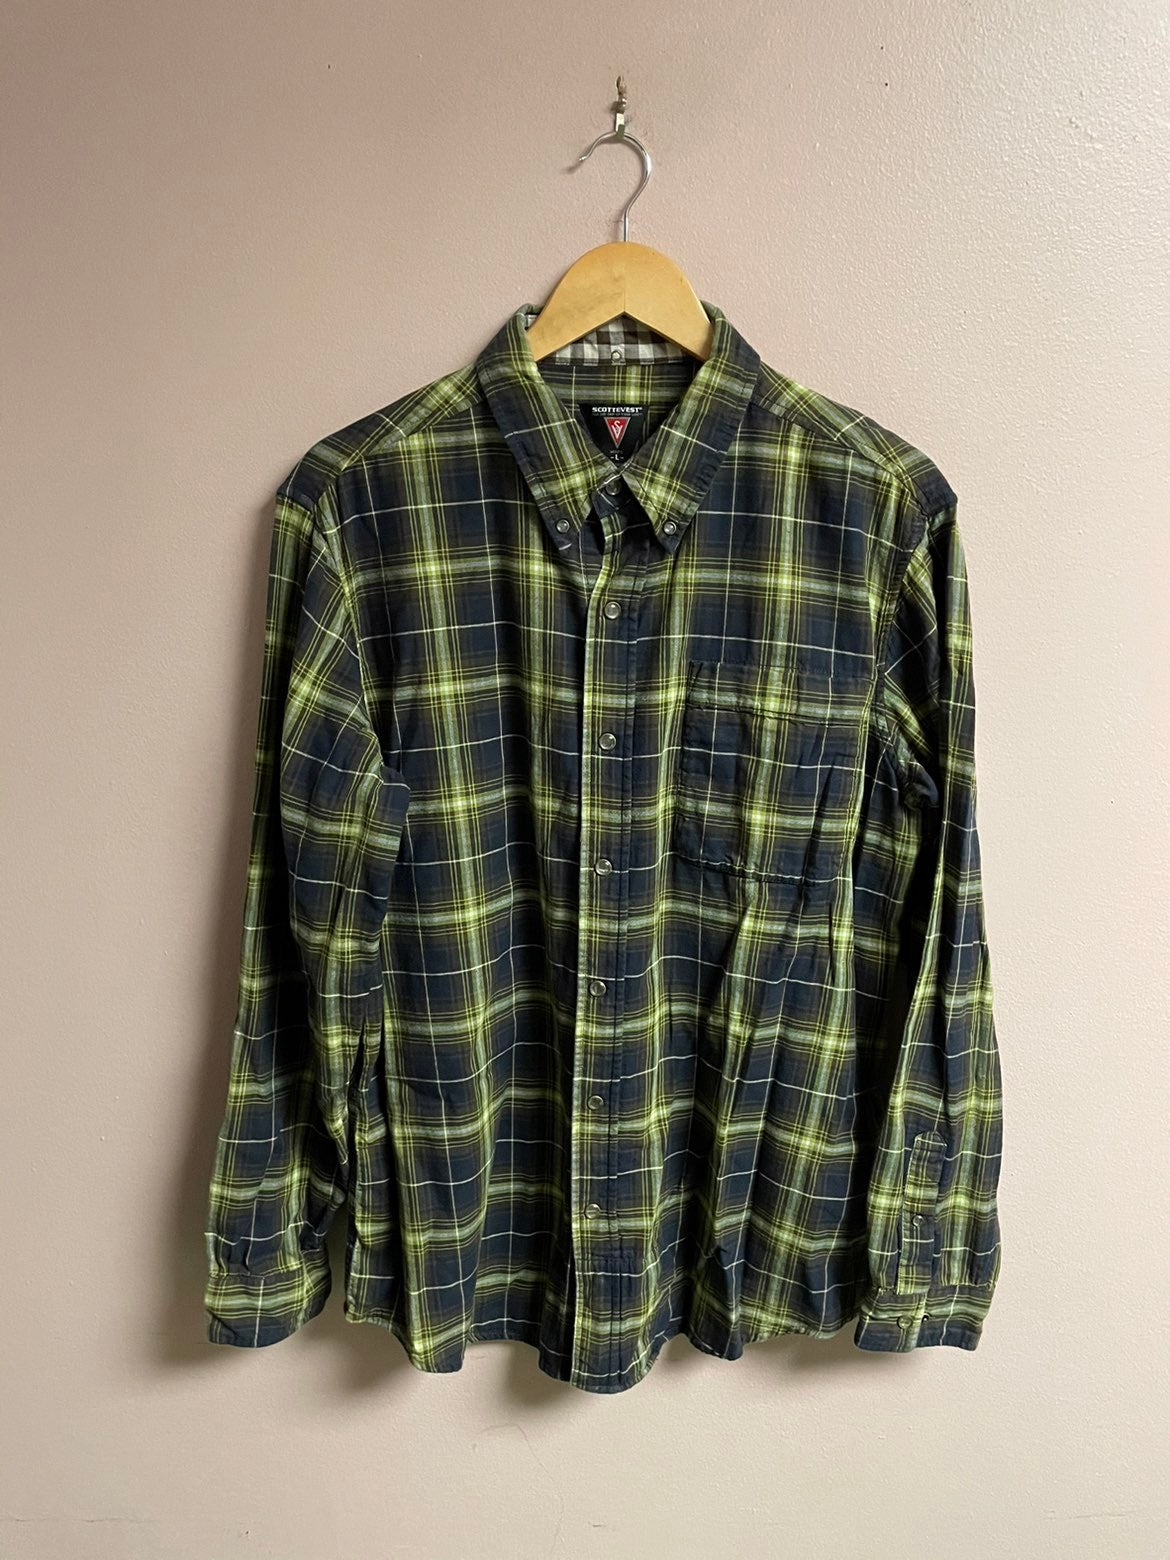 Scottevest tec plaid button shirt